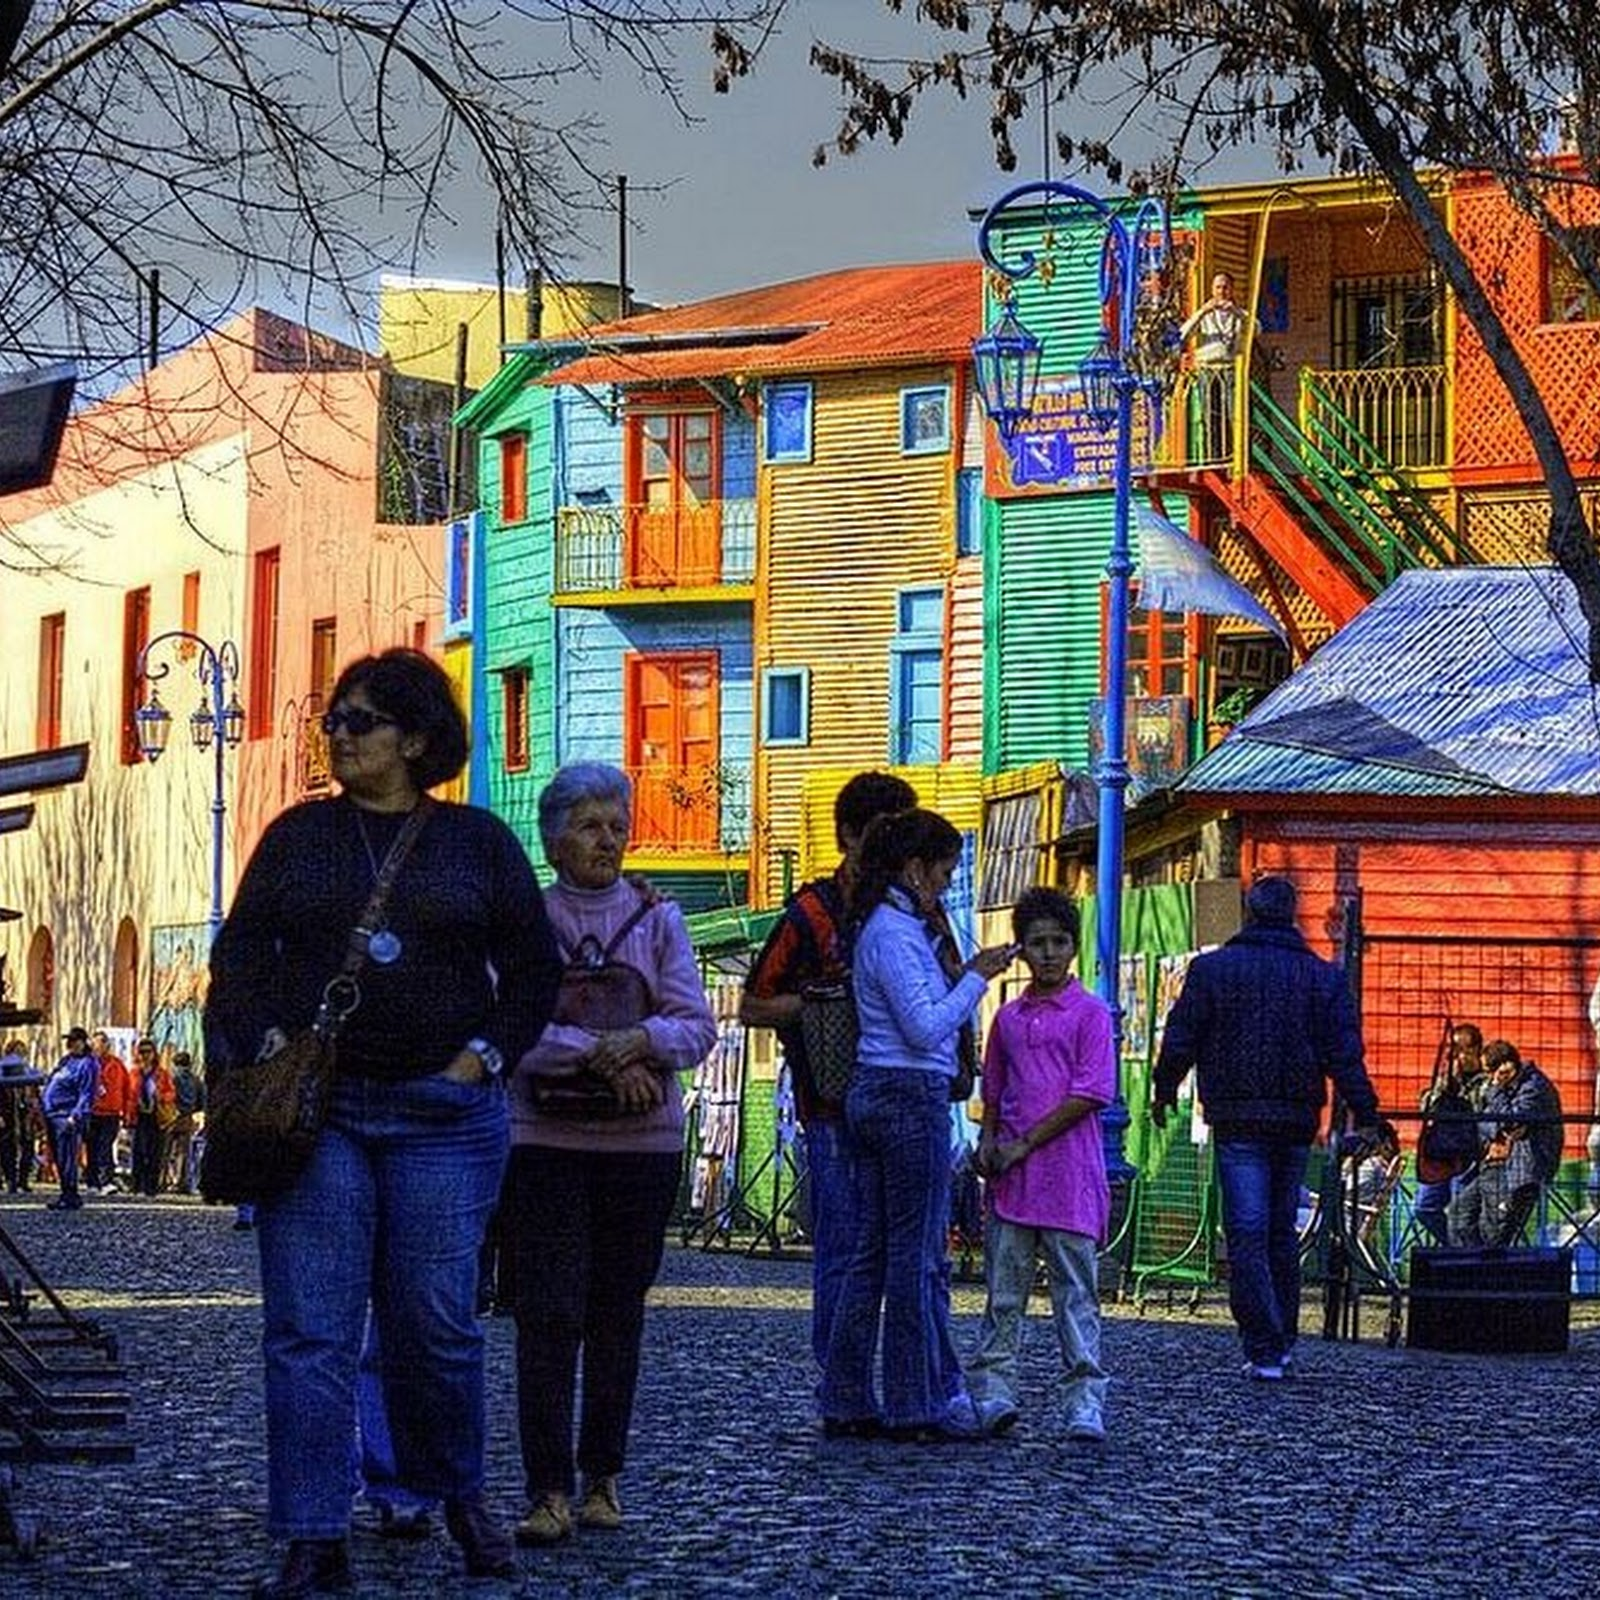 La Boca: Buenos Aires' Colorful District